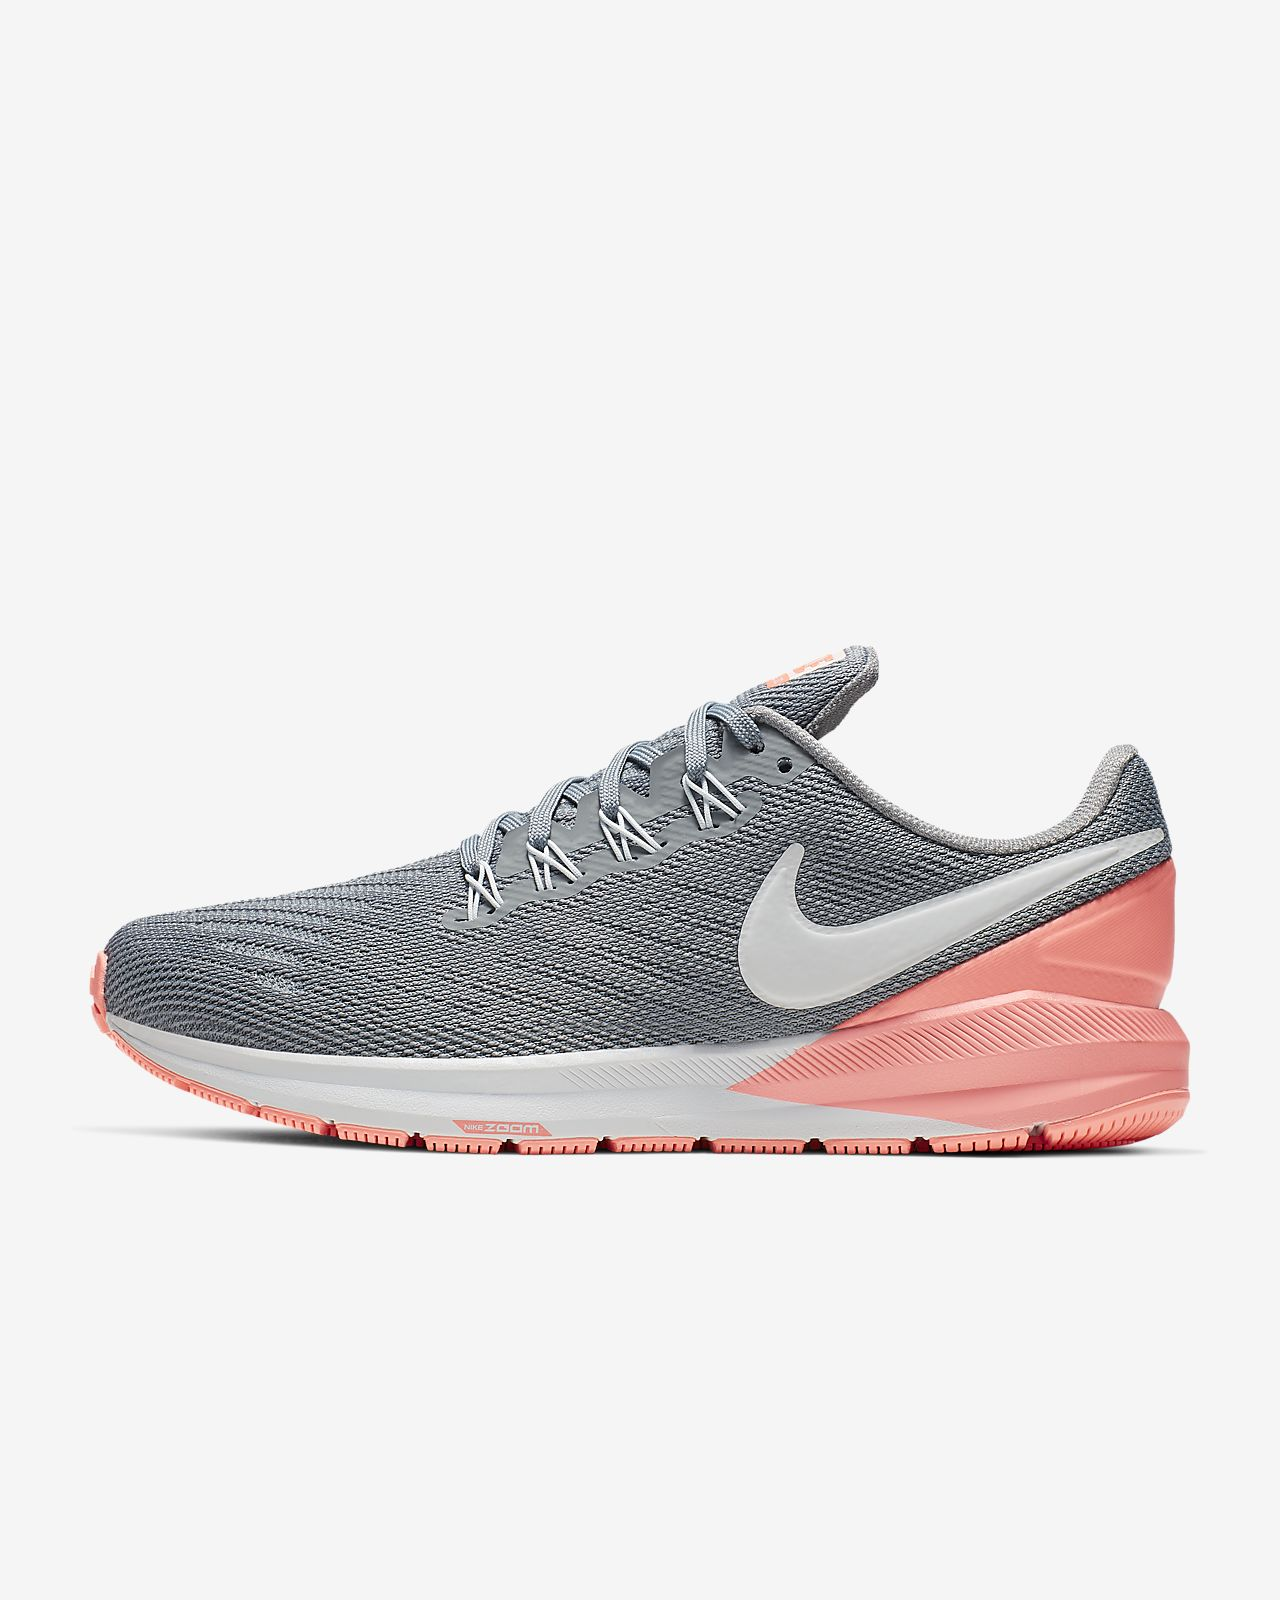 best website 4a5d0 b51e5 ... Chaussure de running Nike Air Zoom Structure 22 pour Femme